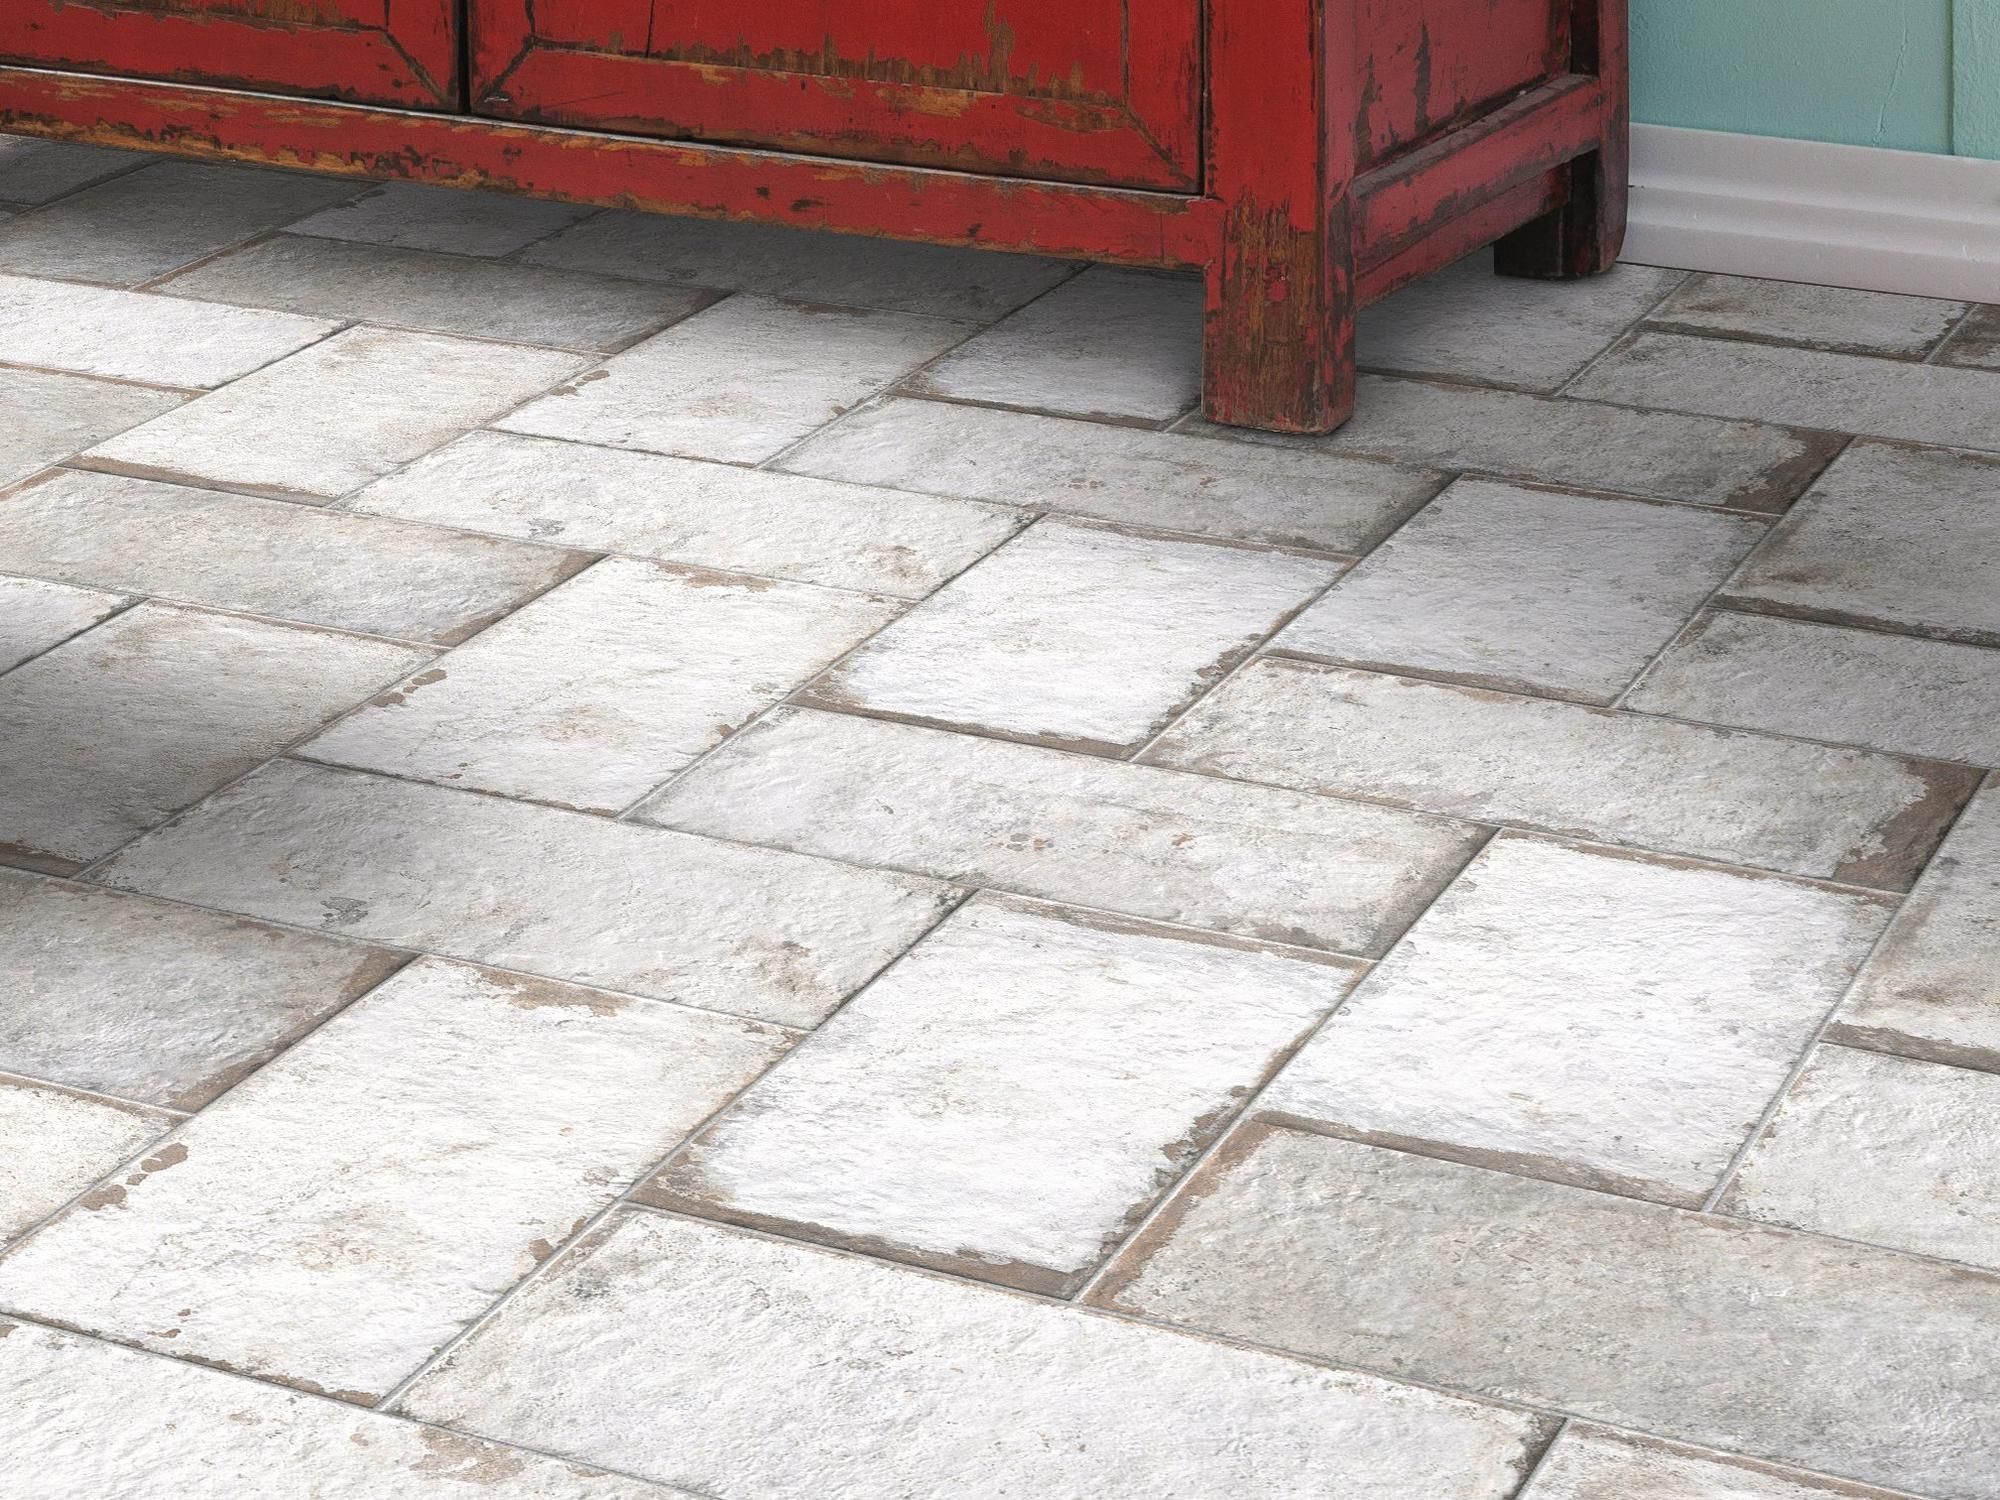 24+ Floor and decor pavers ideas in 2021